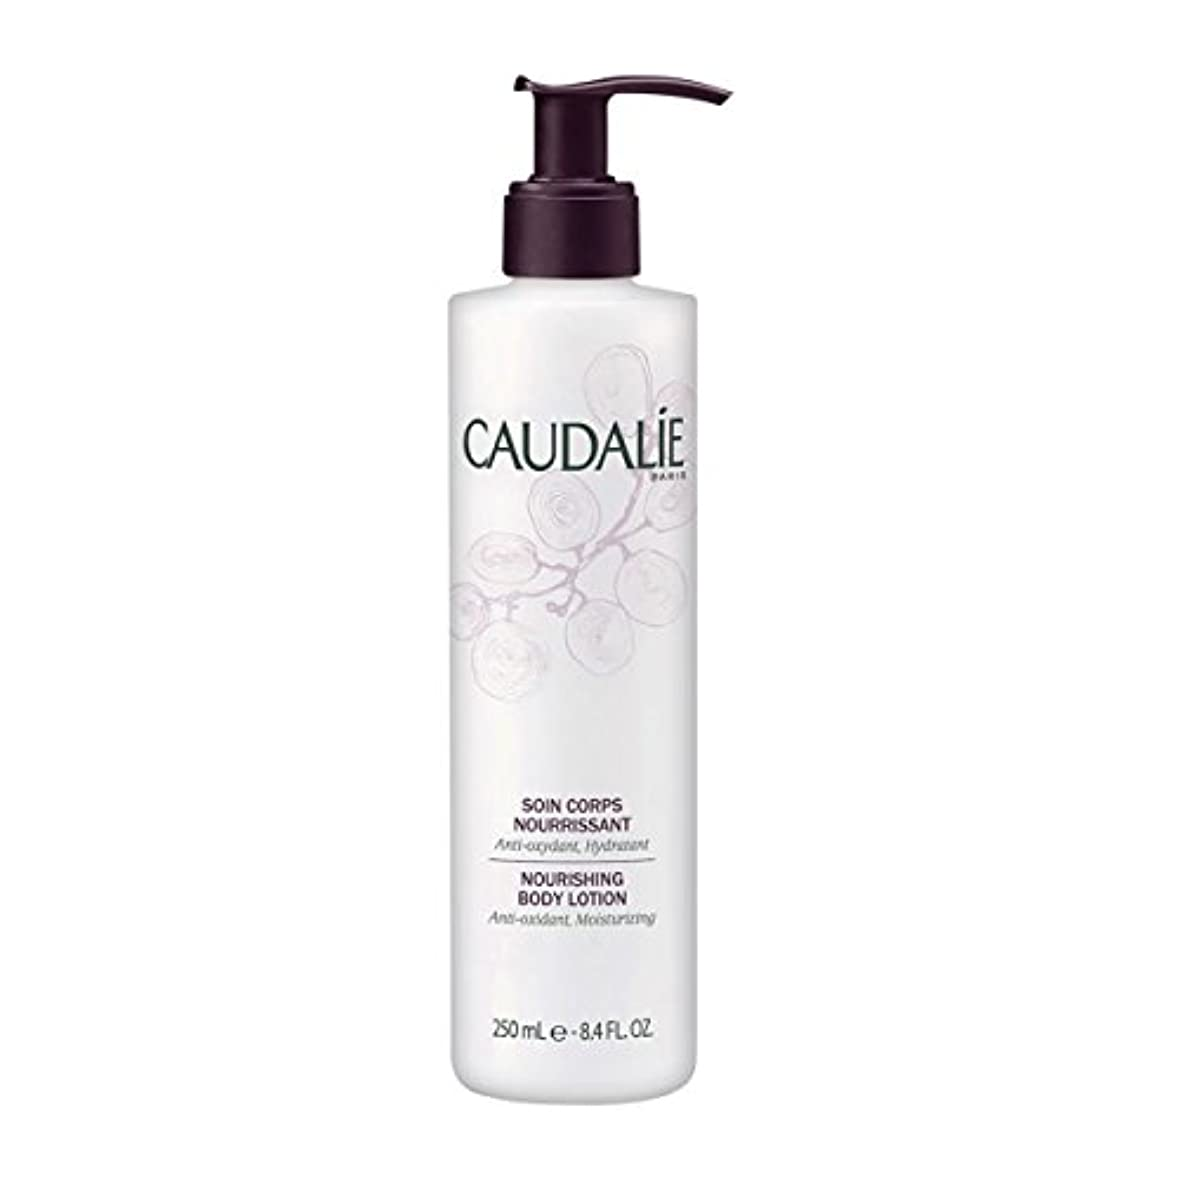 Caudalie Nourishing Body Lotion 400ml [並行輸入品]